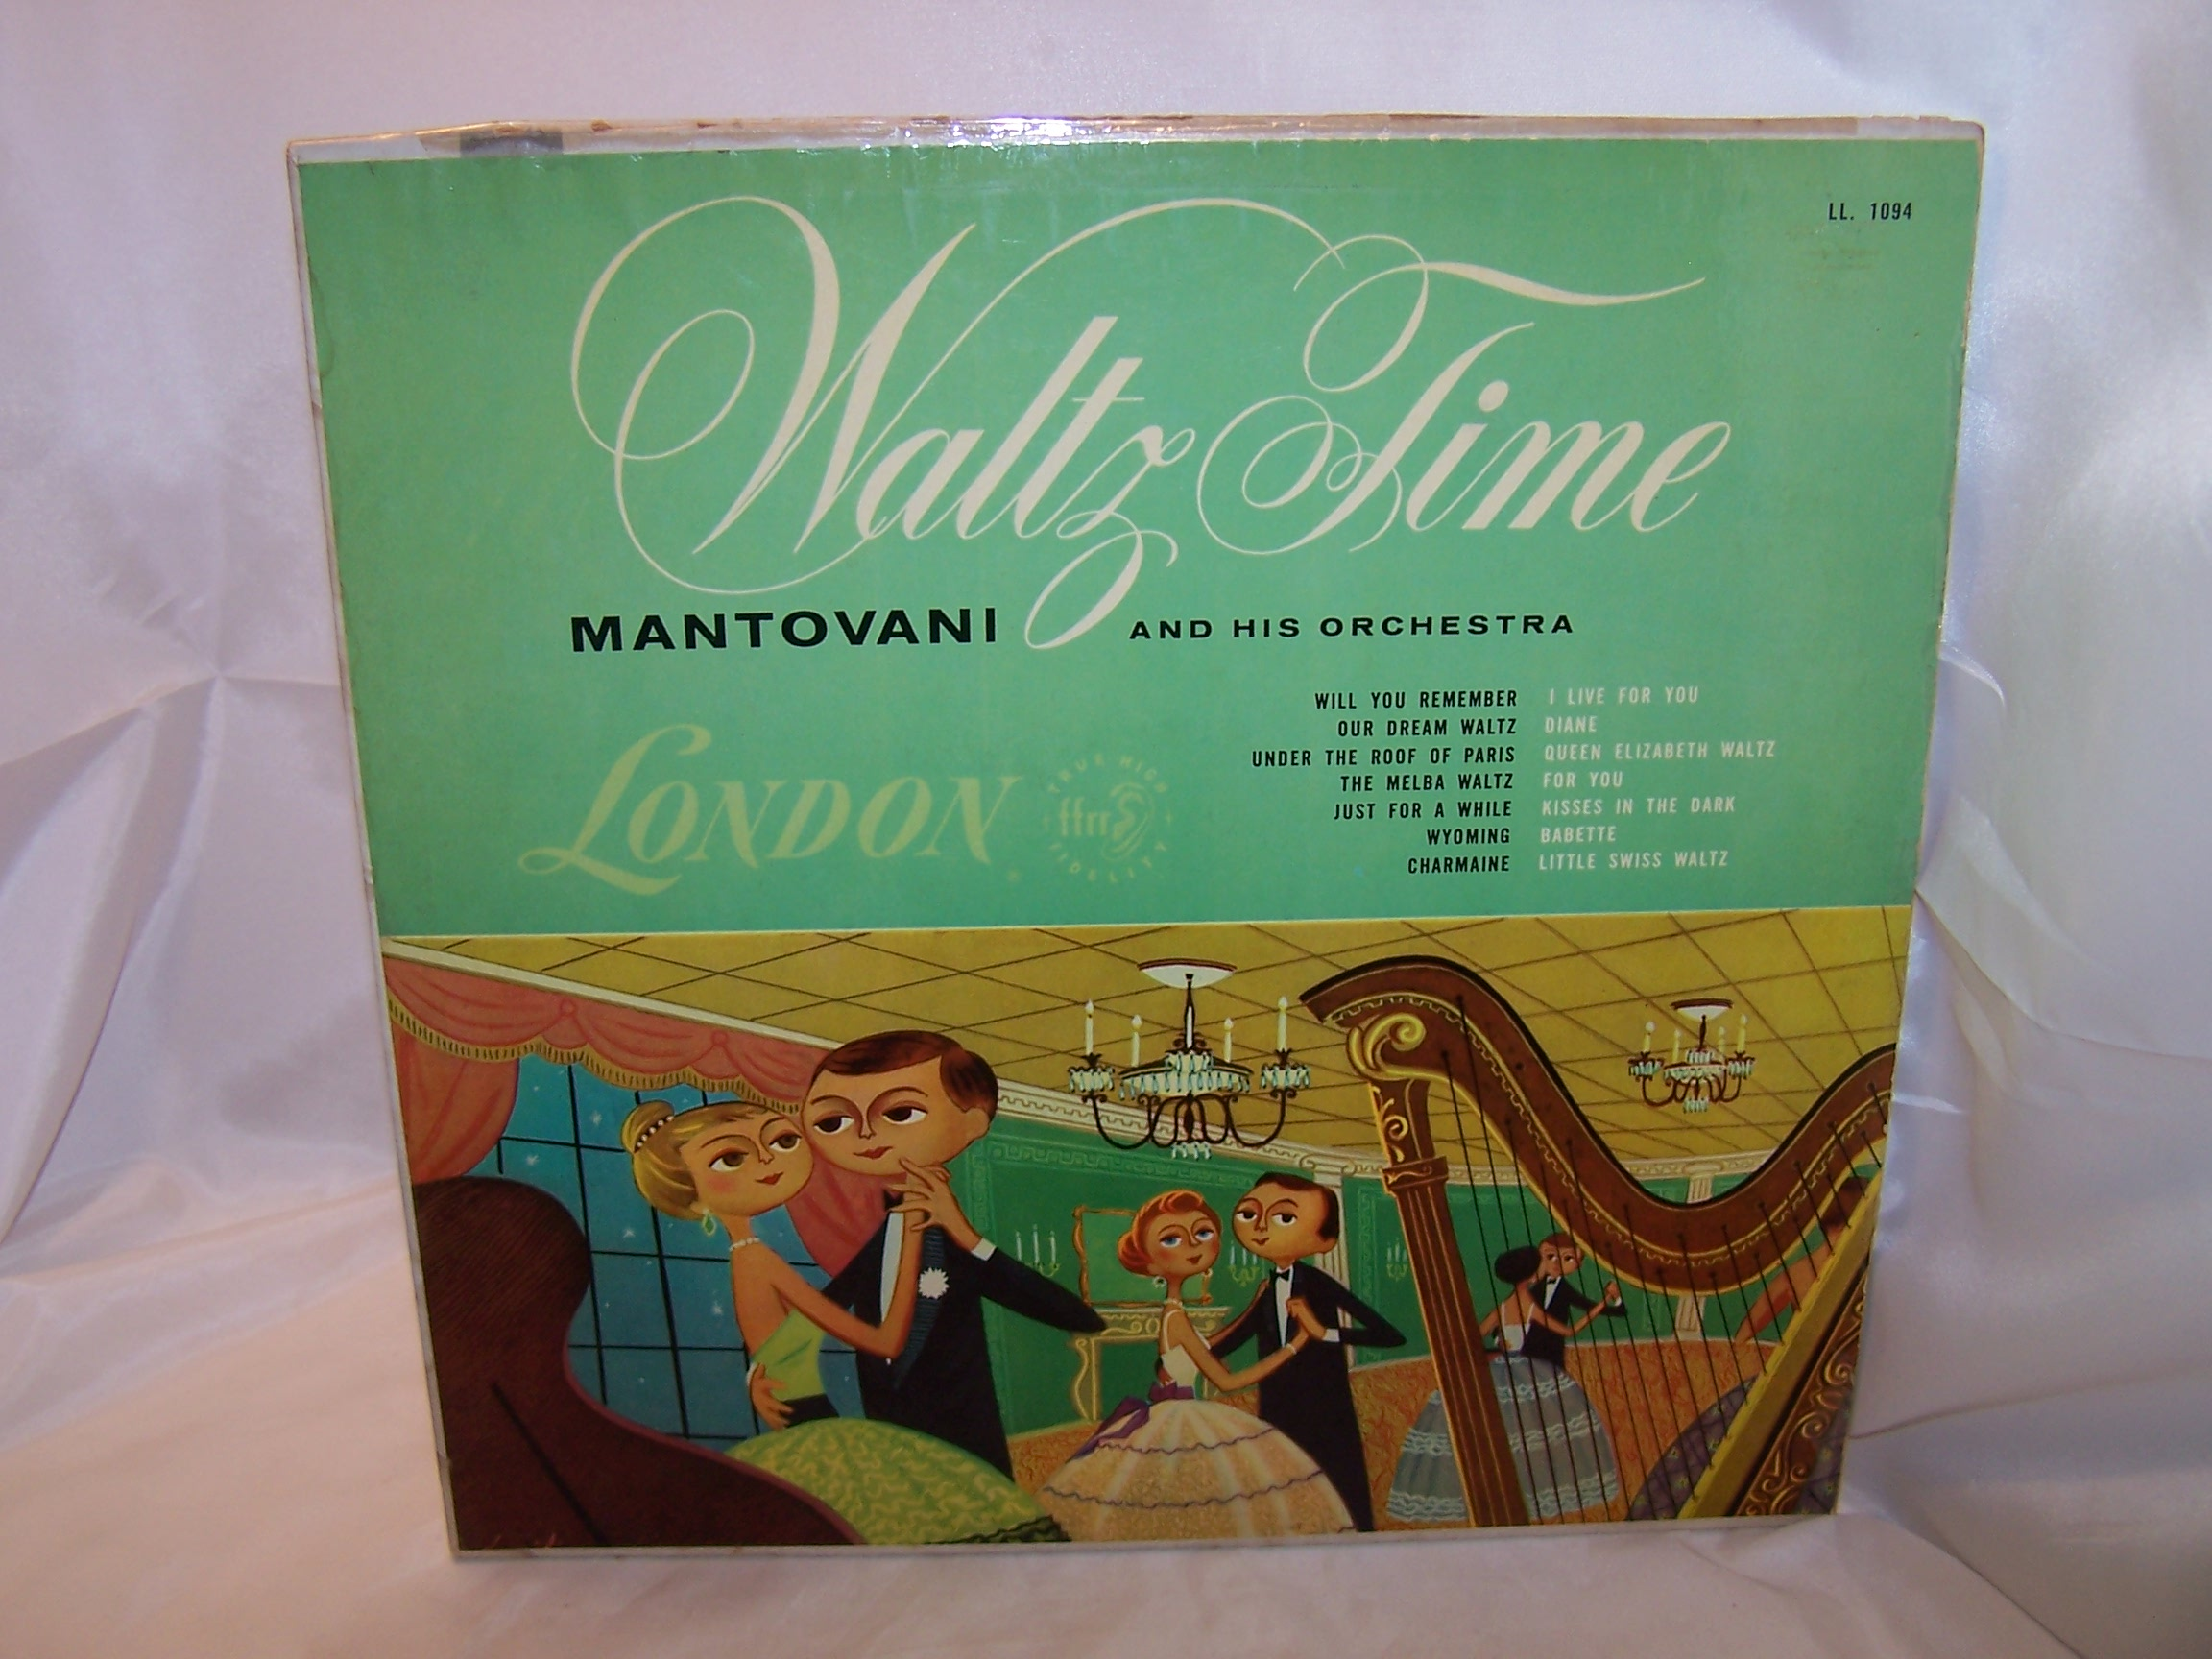 Mantovani, Waltz Time Record